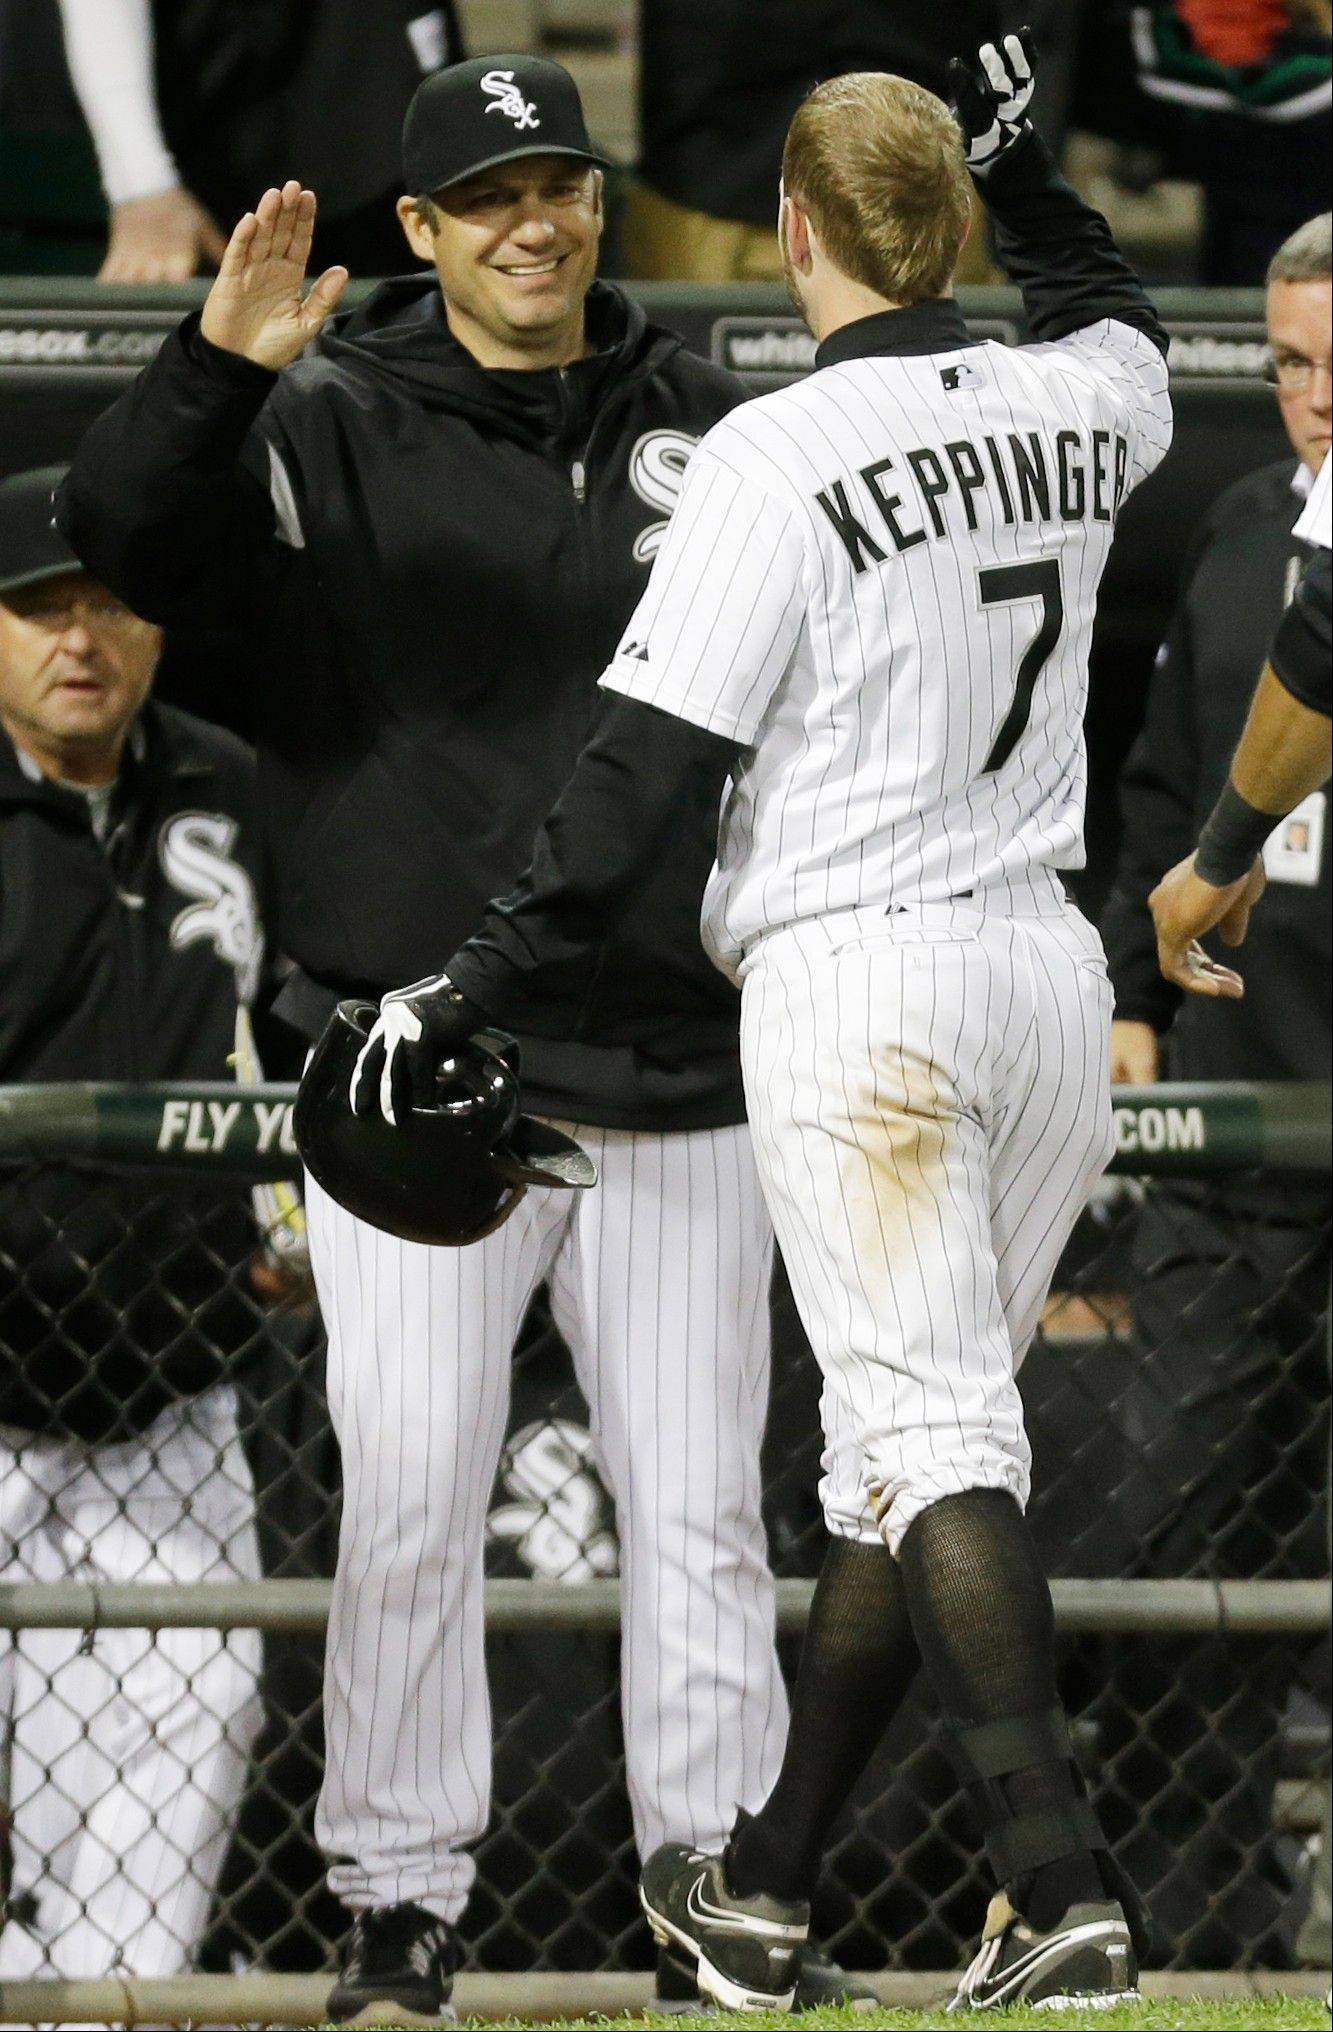 Chicago White Sox's Jeff Keppinger (7) celebrates with manager Robin Ventura after hitting a game-winning single against the Miami Marlins during the 11th inning of a baseball game on Friday, May 24, 2013, in Chicago. The White Sox won 4-3.